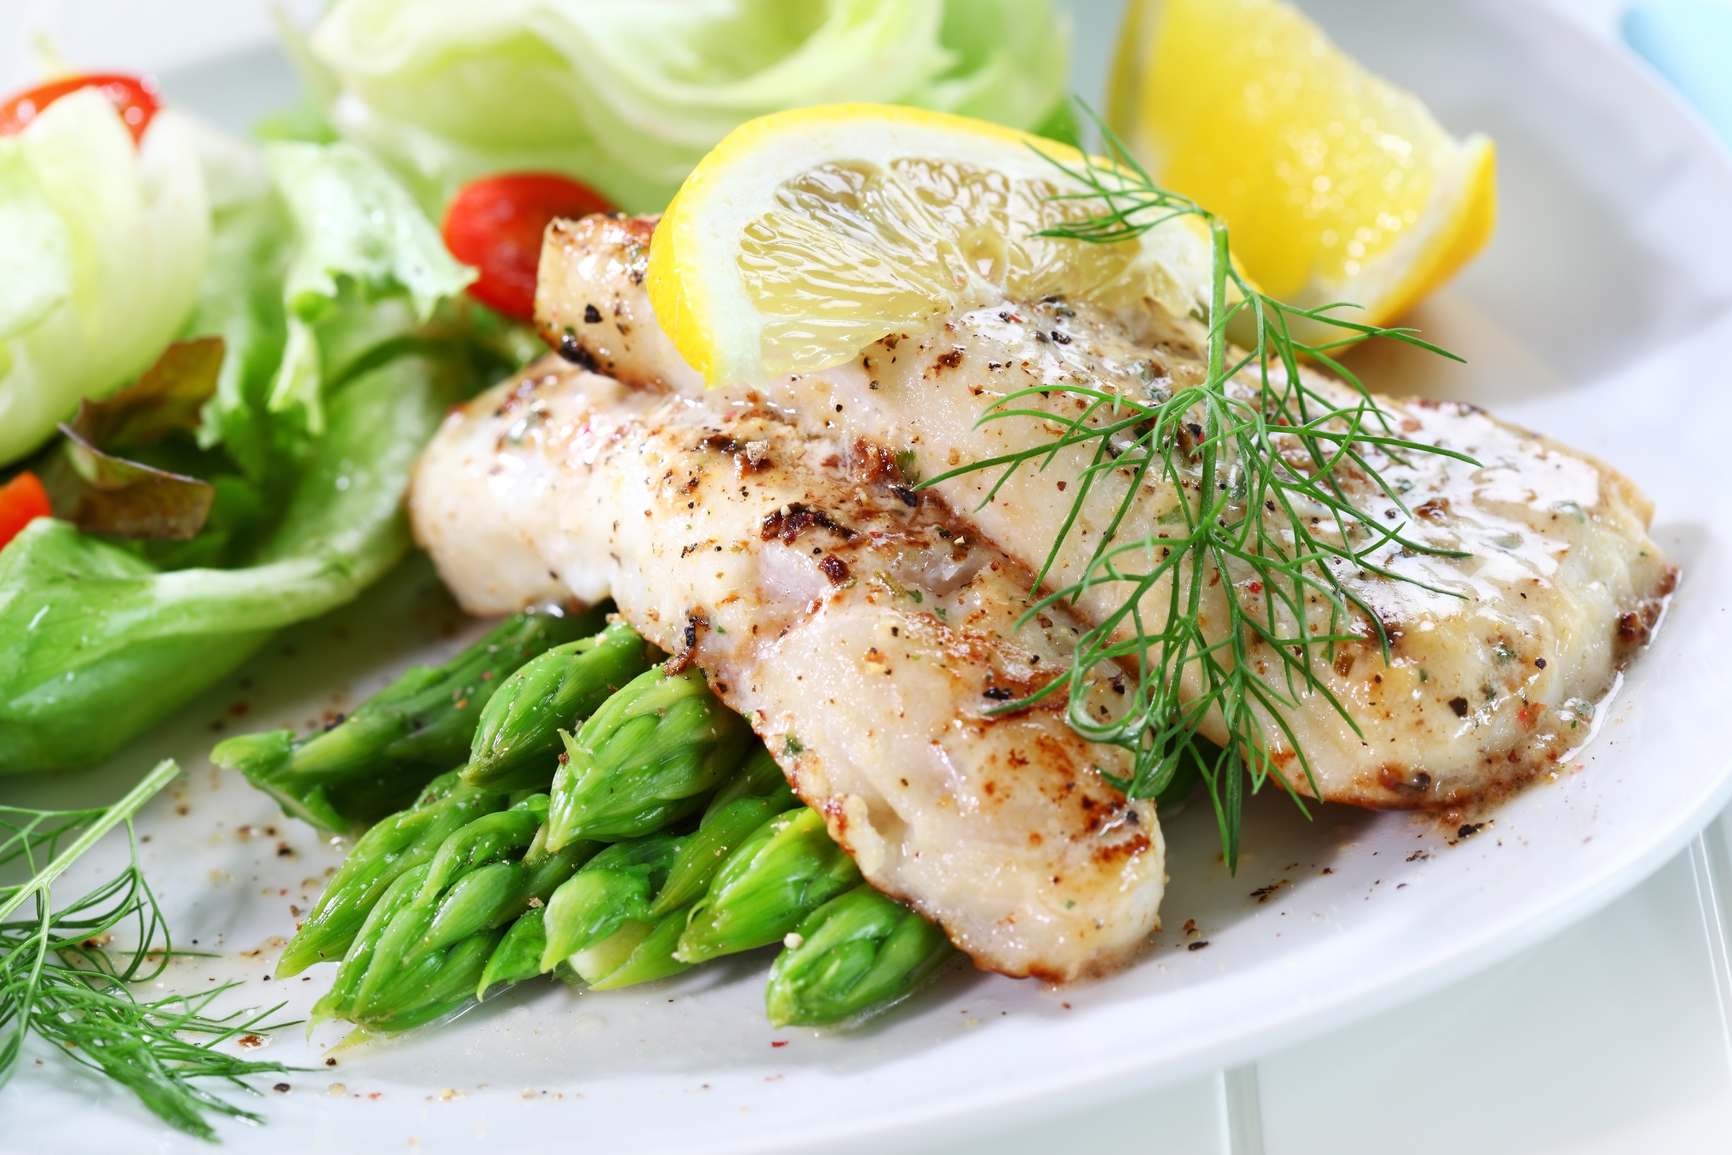 Delicious fried fish on green asparagus with salad